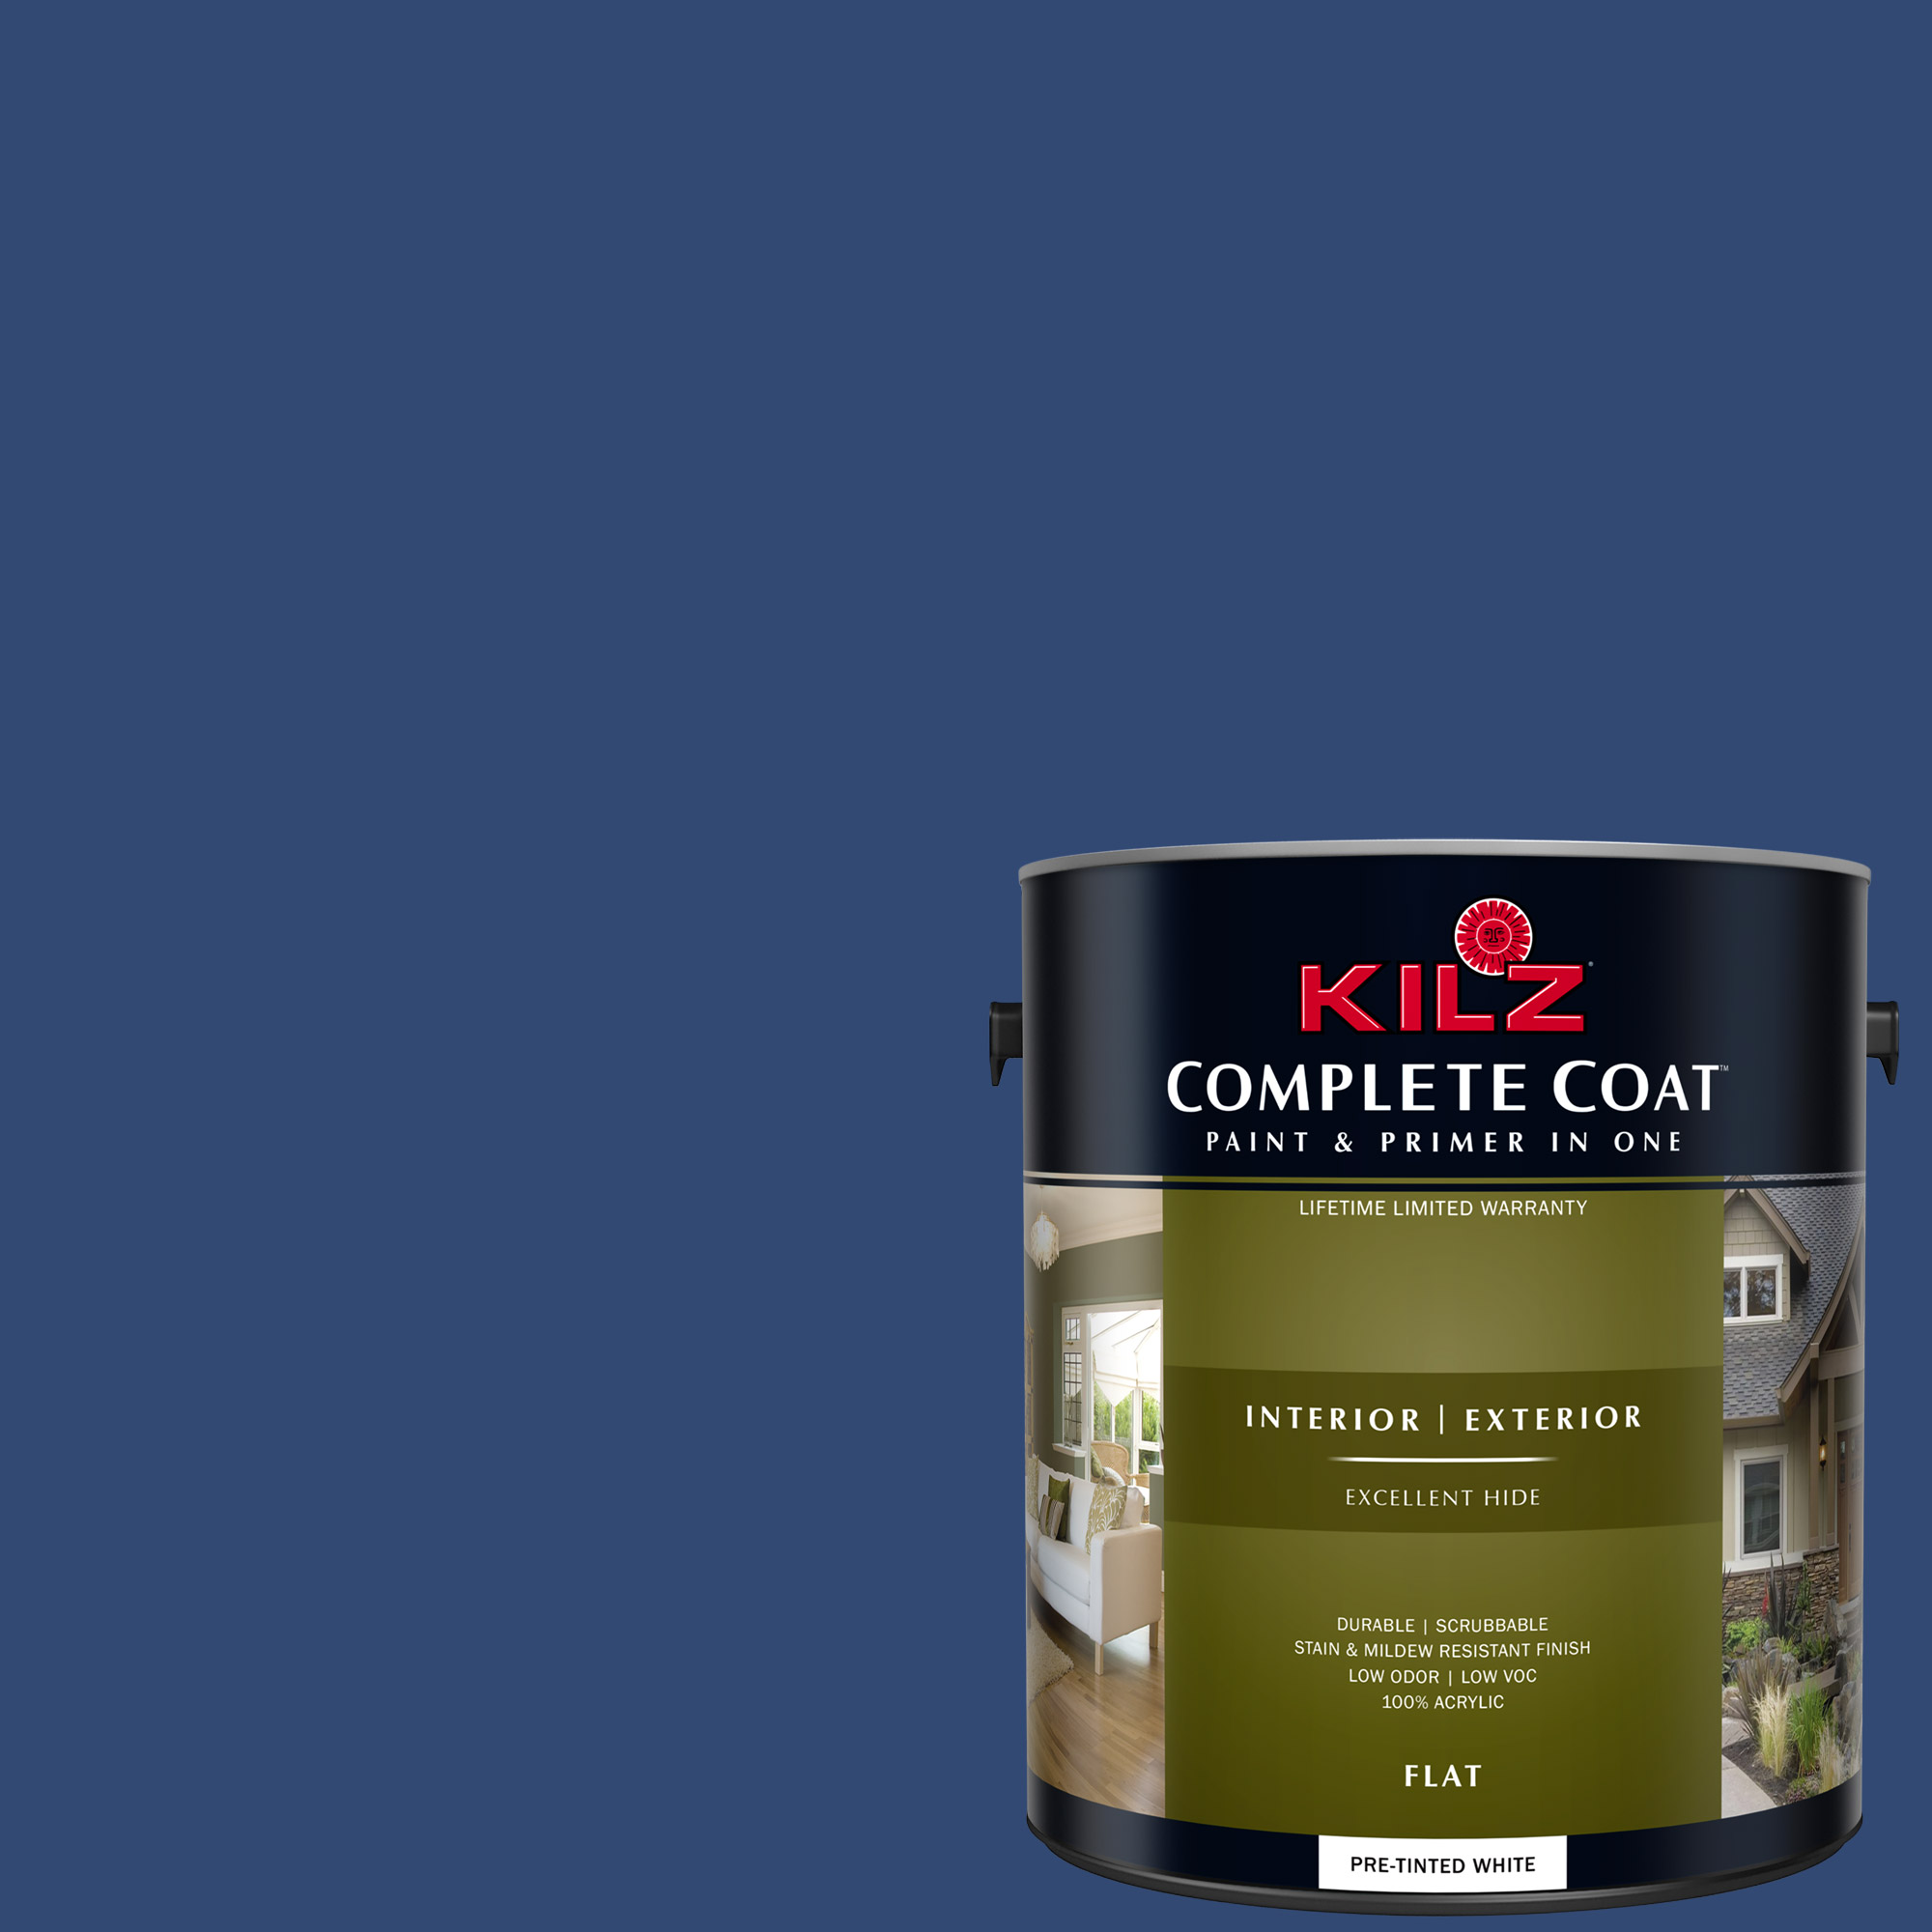 ... KILZ COMPLETE COAT Interior/Exterior Paint u0026 Primer in One #RH220 Indigo & KILZ COMPLETE COAT Interior/Exterior Paint u0026 Primer in One #RH220 ...